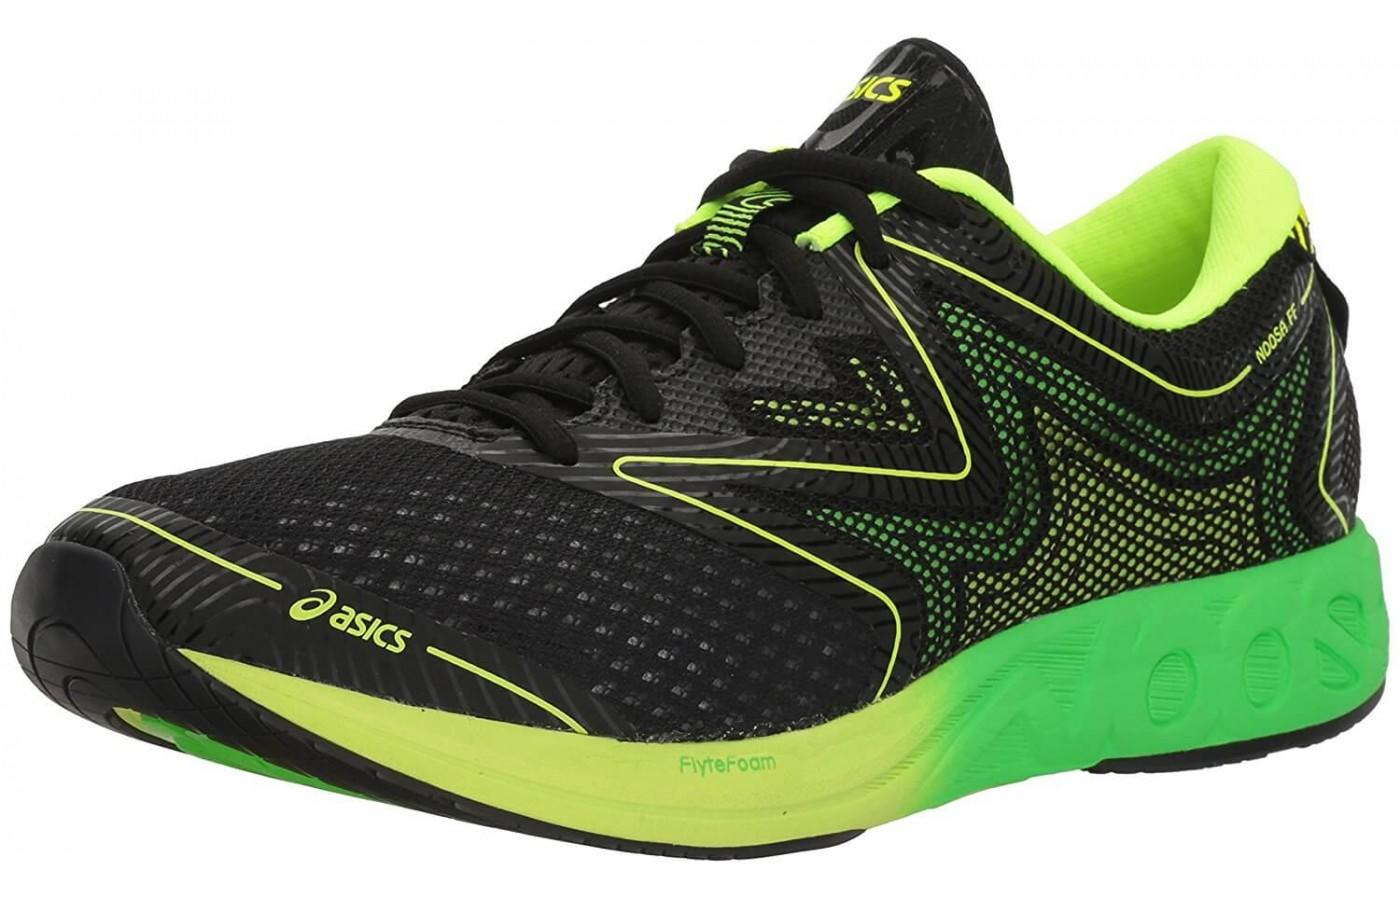 the Asics Noosa FF is a very comfortable shoe that was made with triathletes in mind